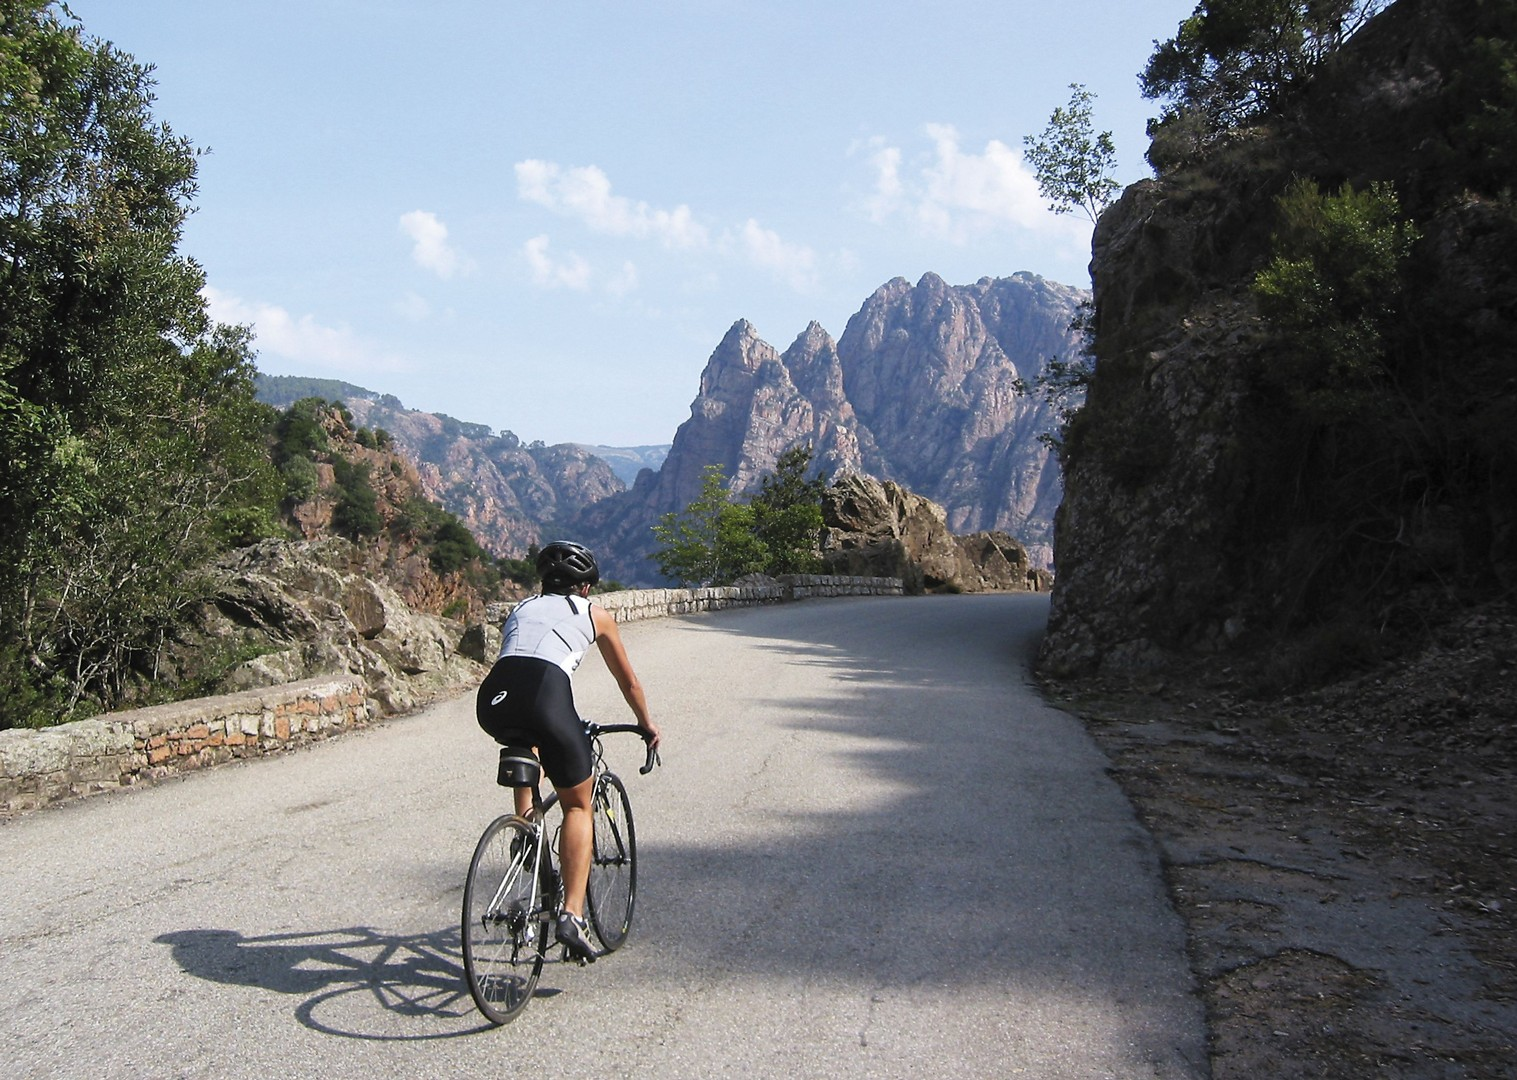 route-des-artisans-corsica-guided-road-cycling-holiday-the-beautiful-isle.jpg - France - Corsica - The Beautiful Isle - Road Cycling